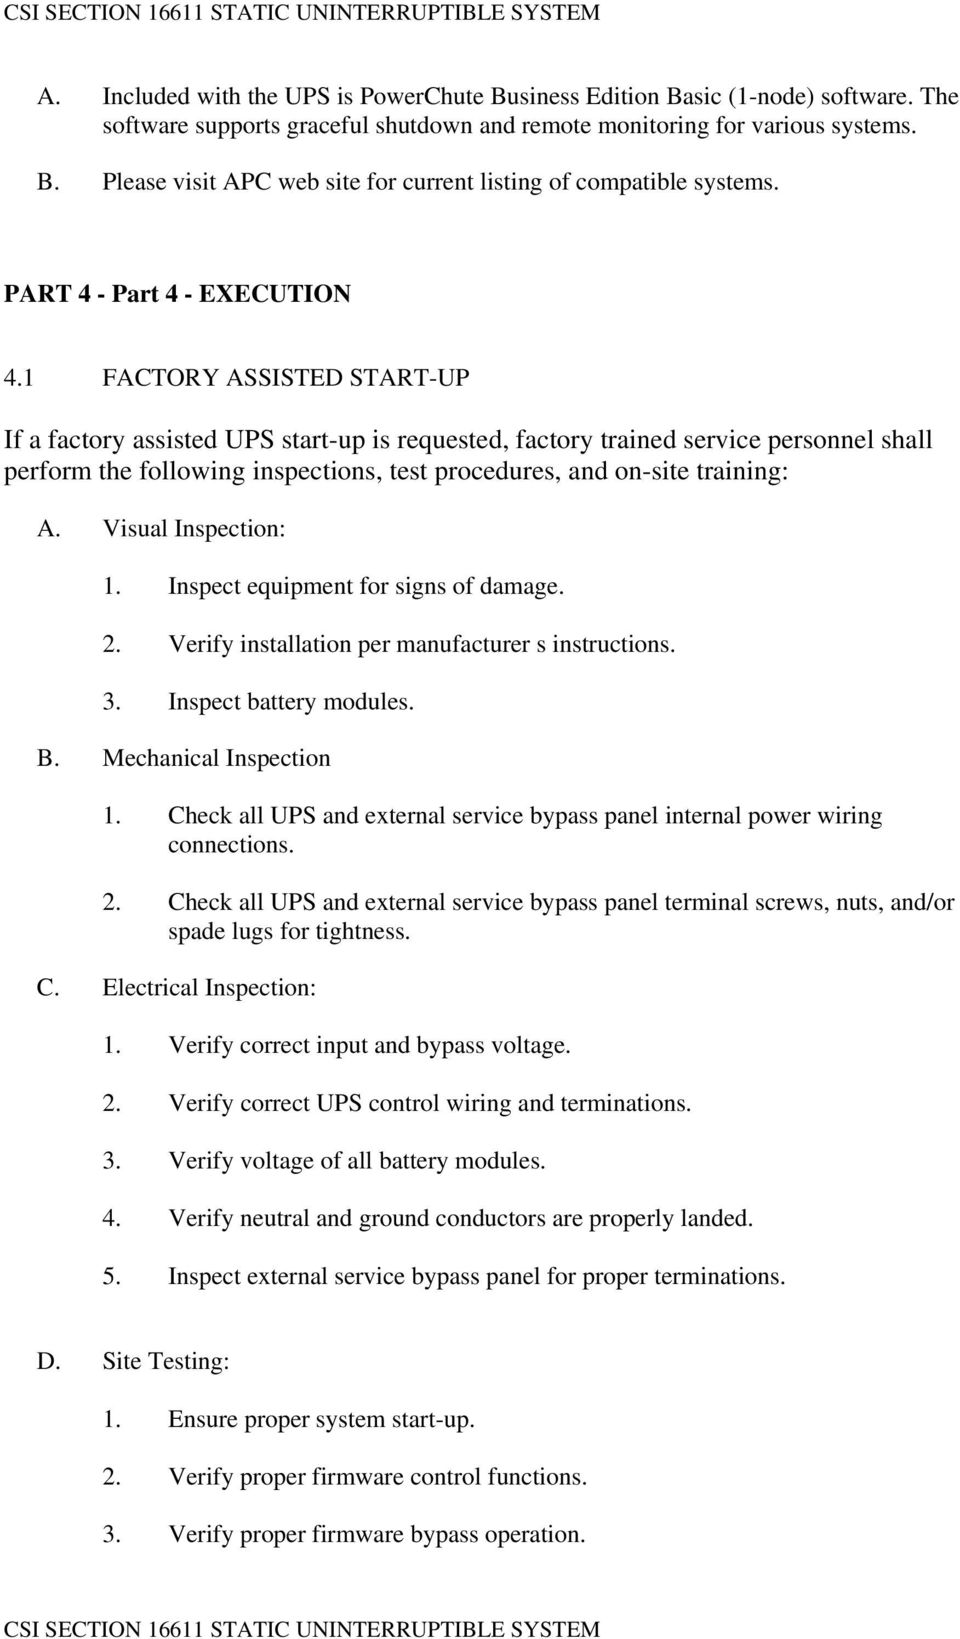 1 FACTORY ASSISTED START-UP If a factory assisted UPS start-up is requested, factory trained service personnel shall perform the following inspections, test procedures, and on-site training: A.